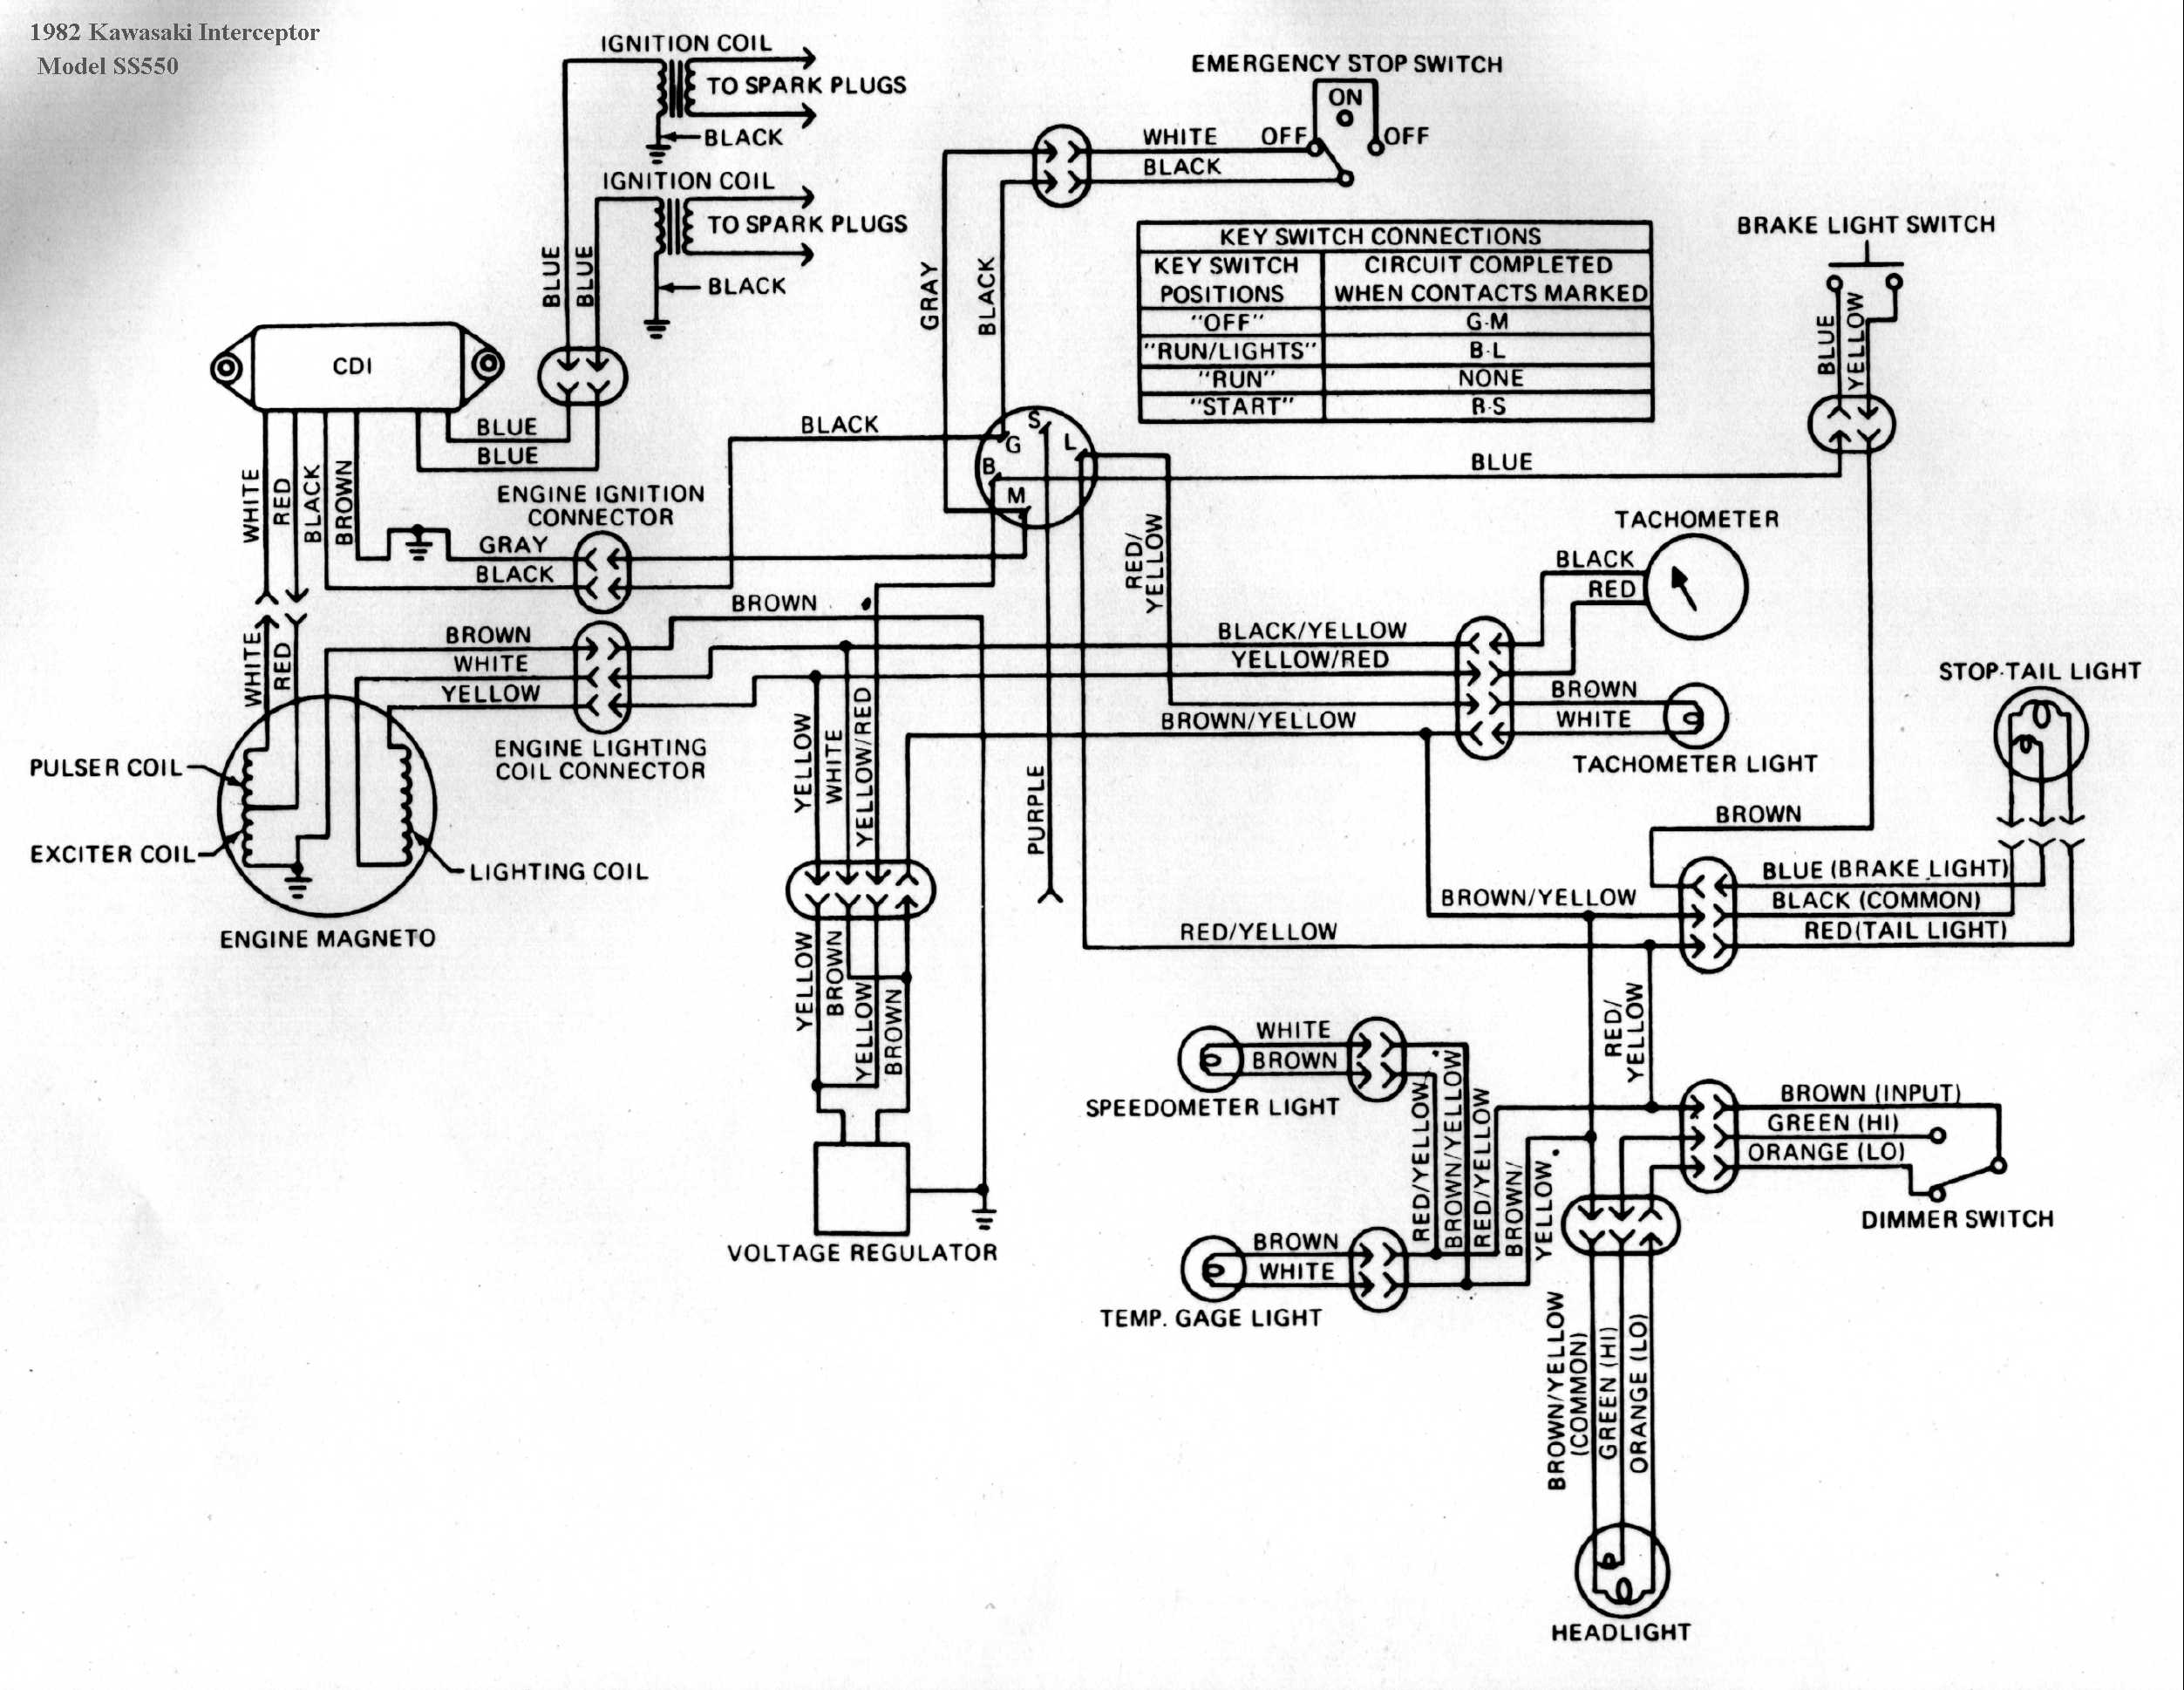 ss550 2009 kawasaki mule 4010 wiring diagram 2009 kawasaki mule 4010 82 Kawasaki LTD 750 Bobber at webbmarketing.co